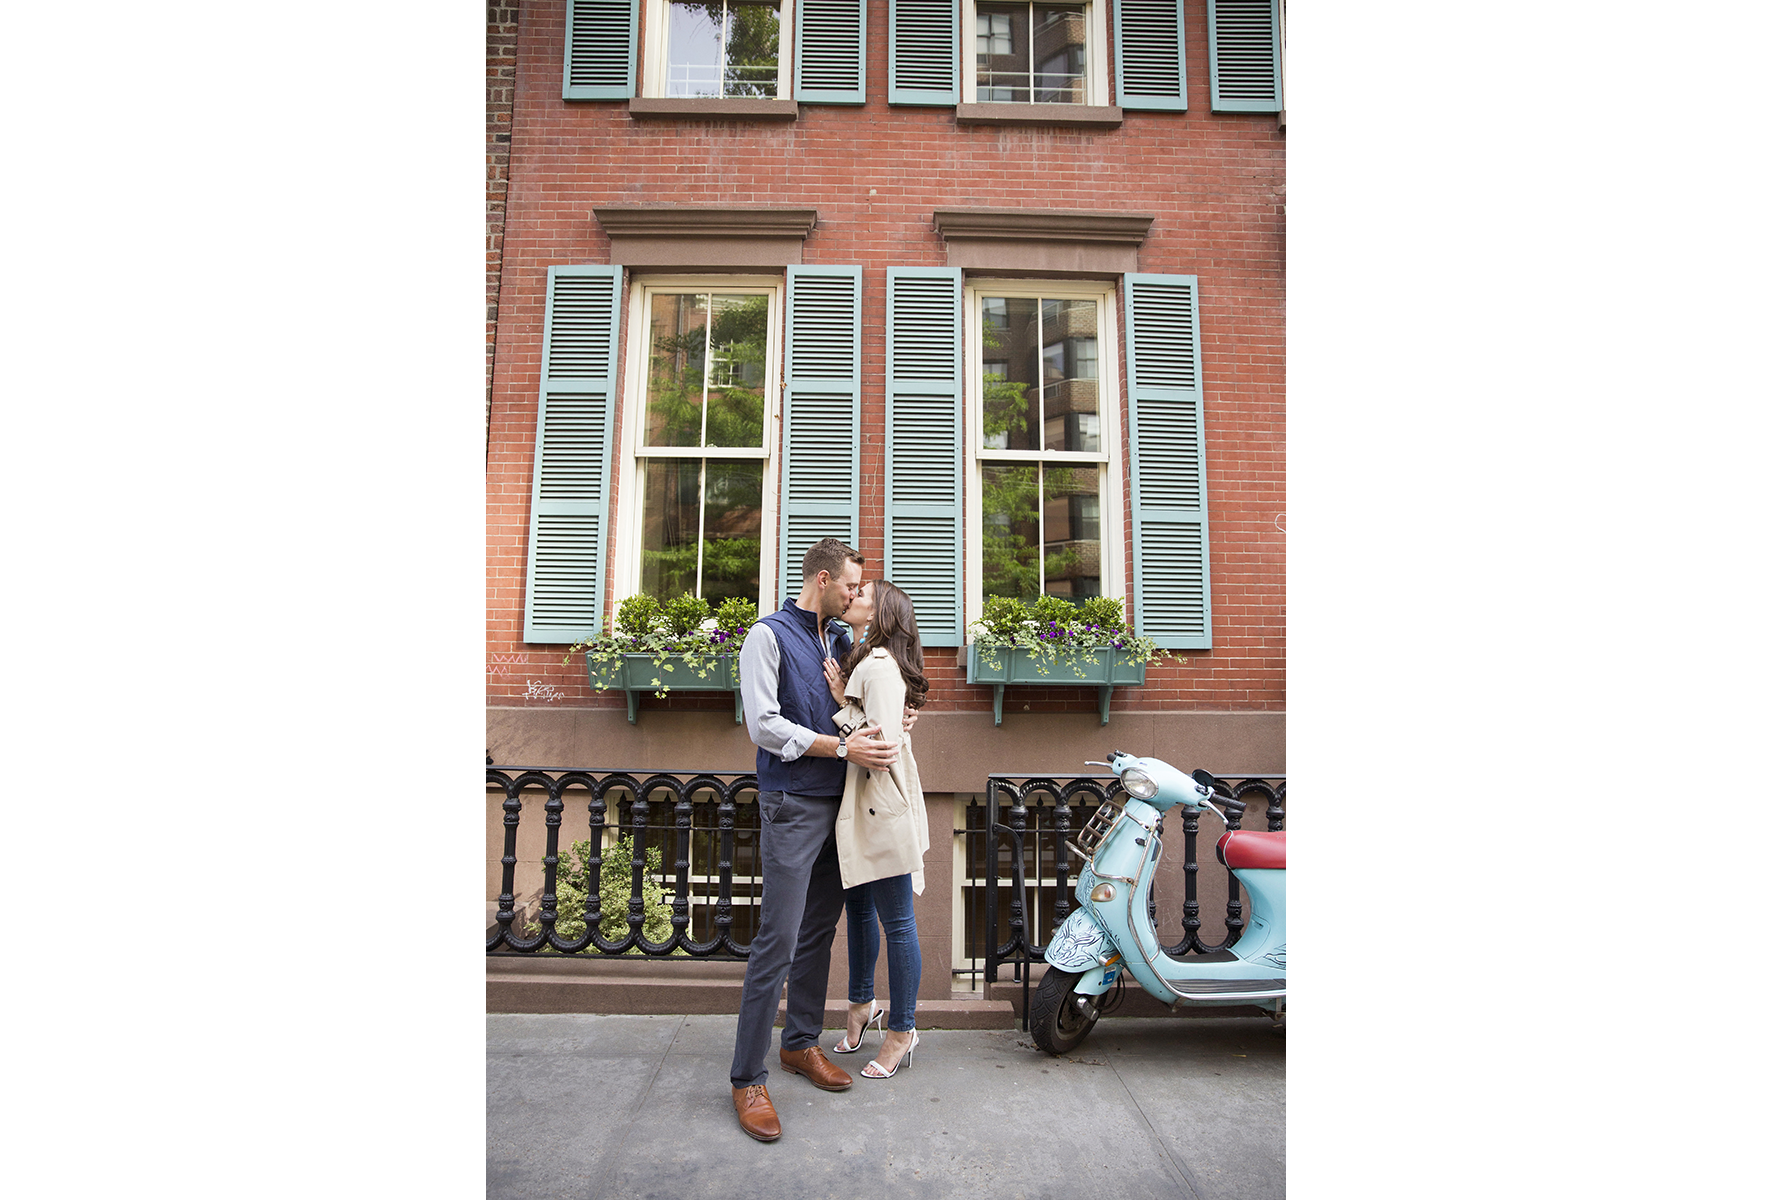 raquelreis_wedding_photography_engagements_015.png